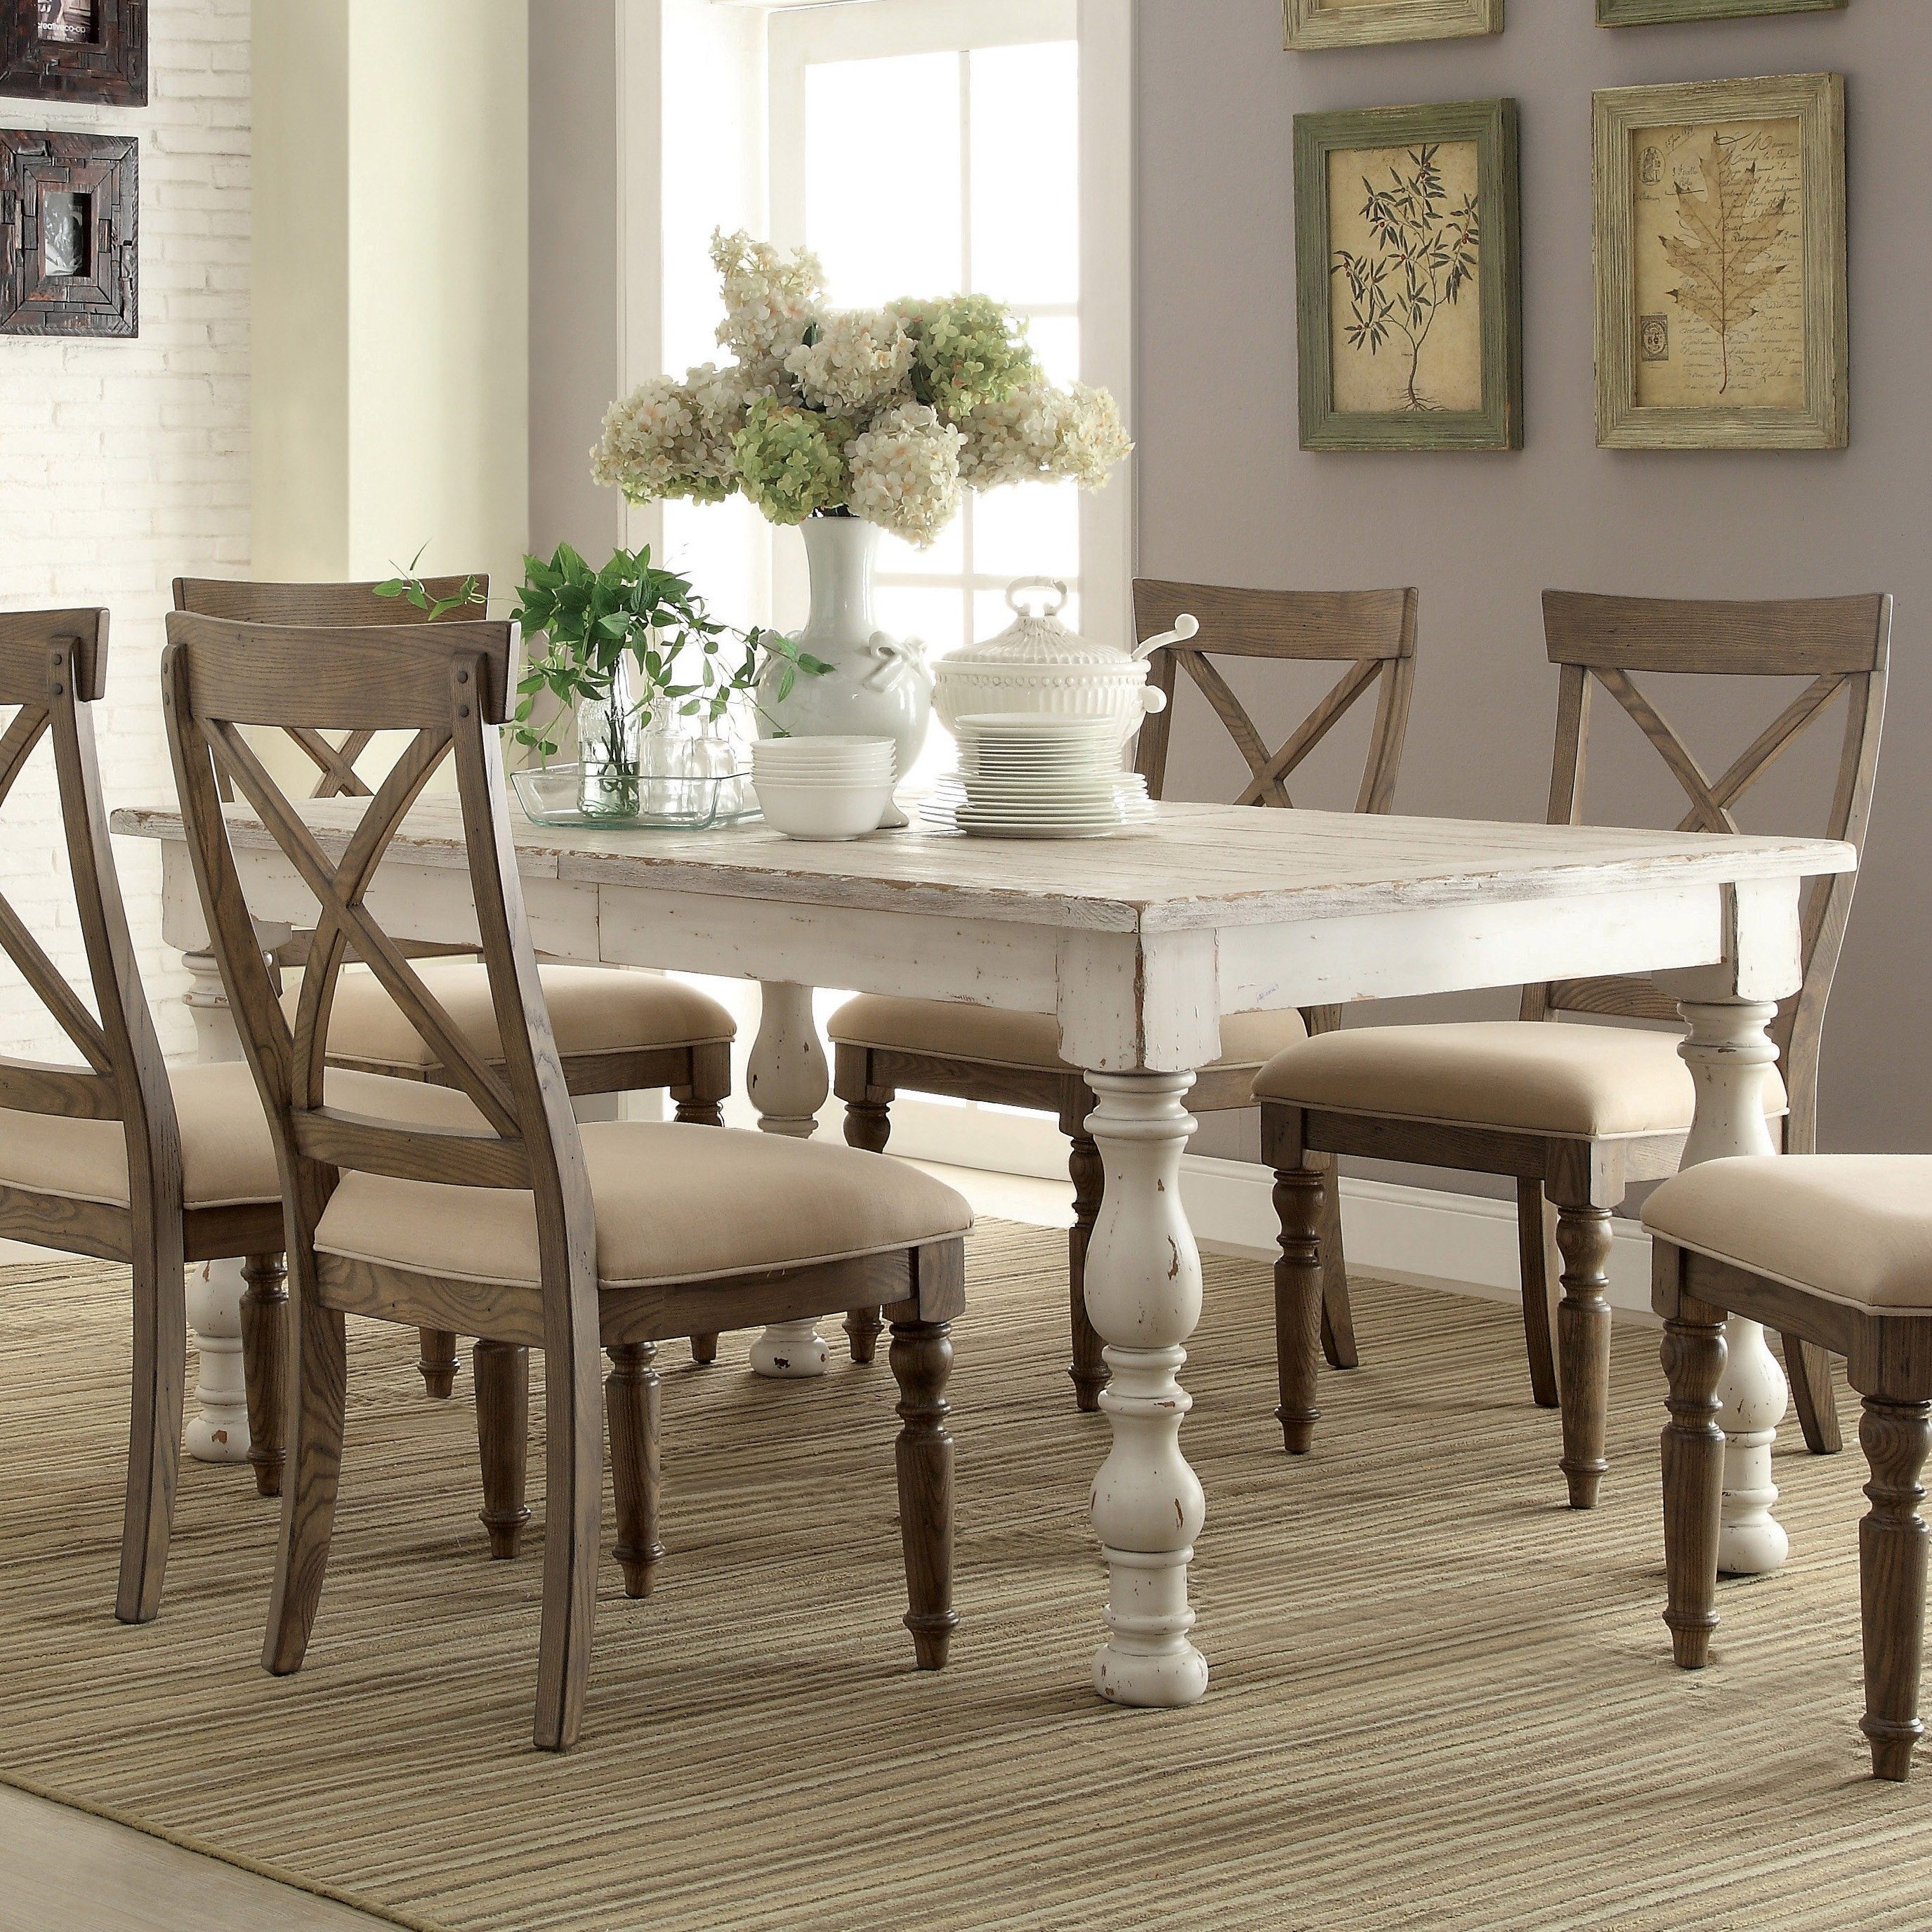 Aberdeen wood rectangular dining table and chairs in for Dining room table chairs